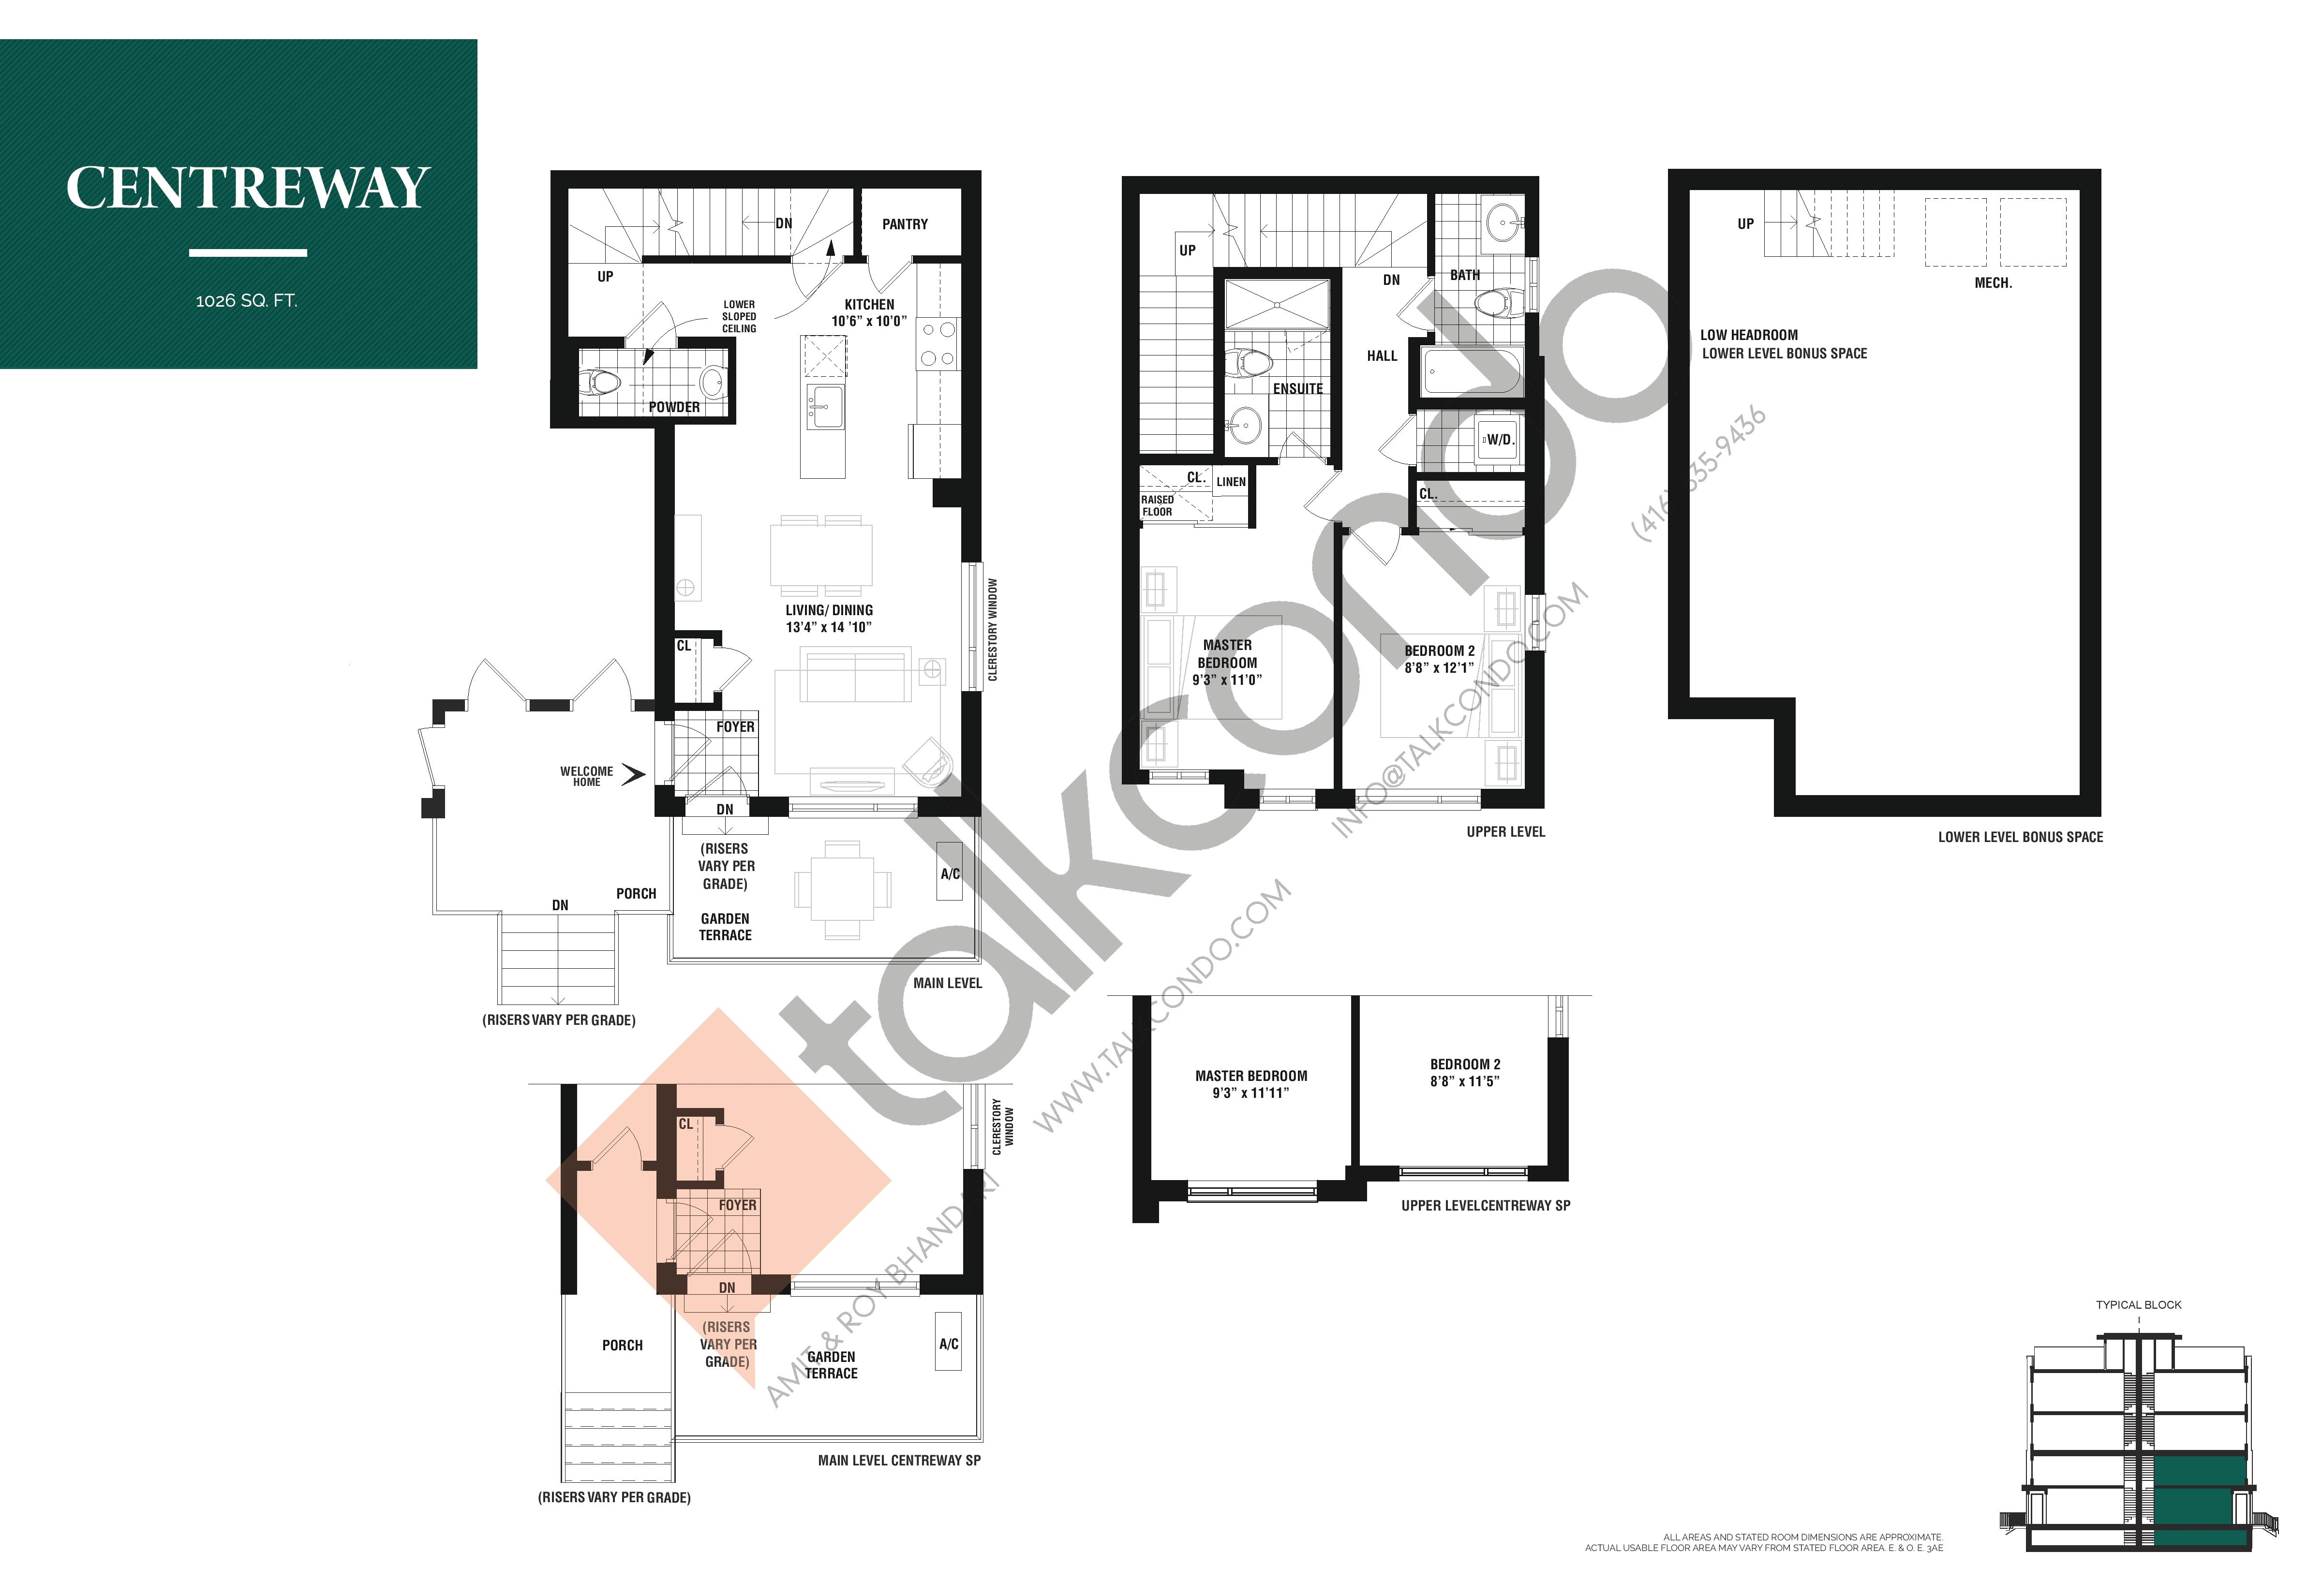 Centreway Floor Plan at The Way Urban Towns - 1026 sq.ft